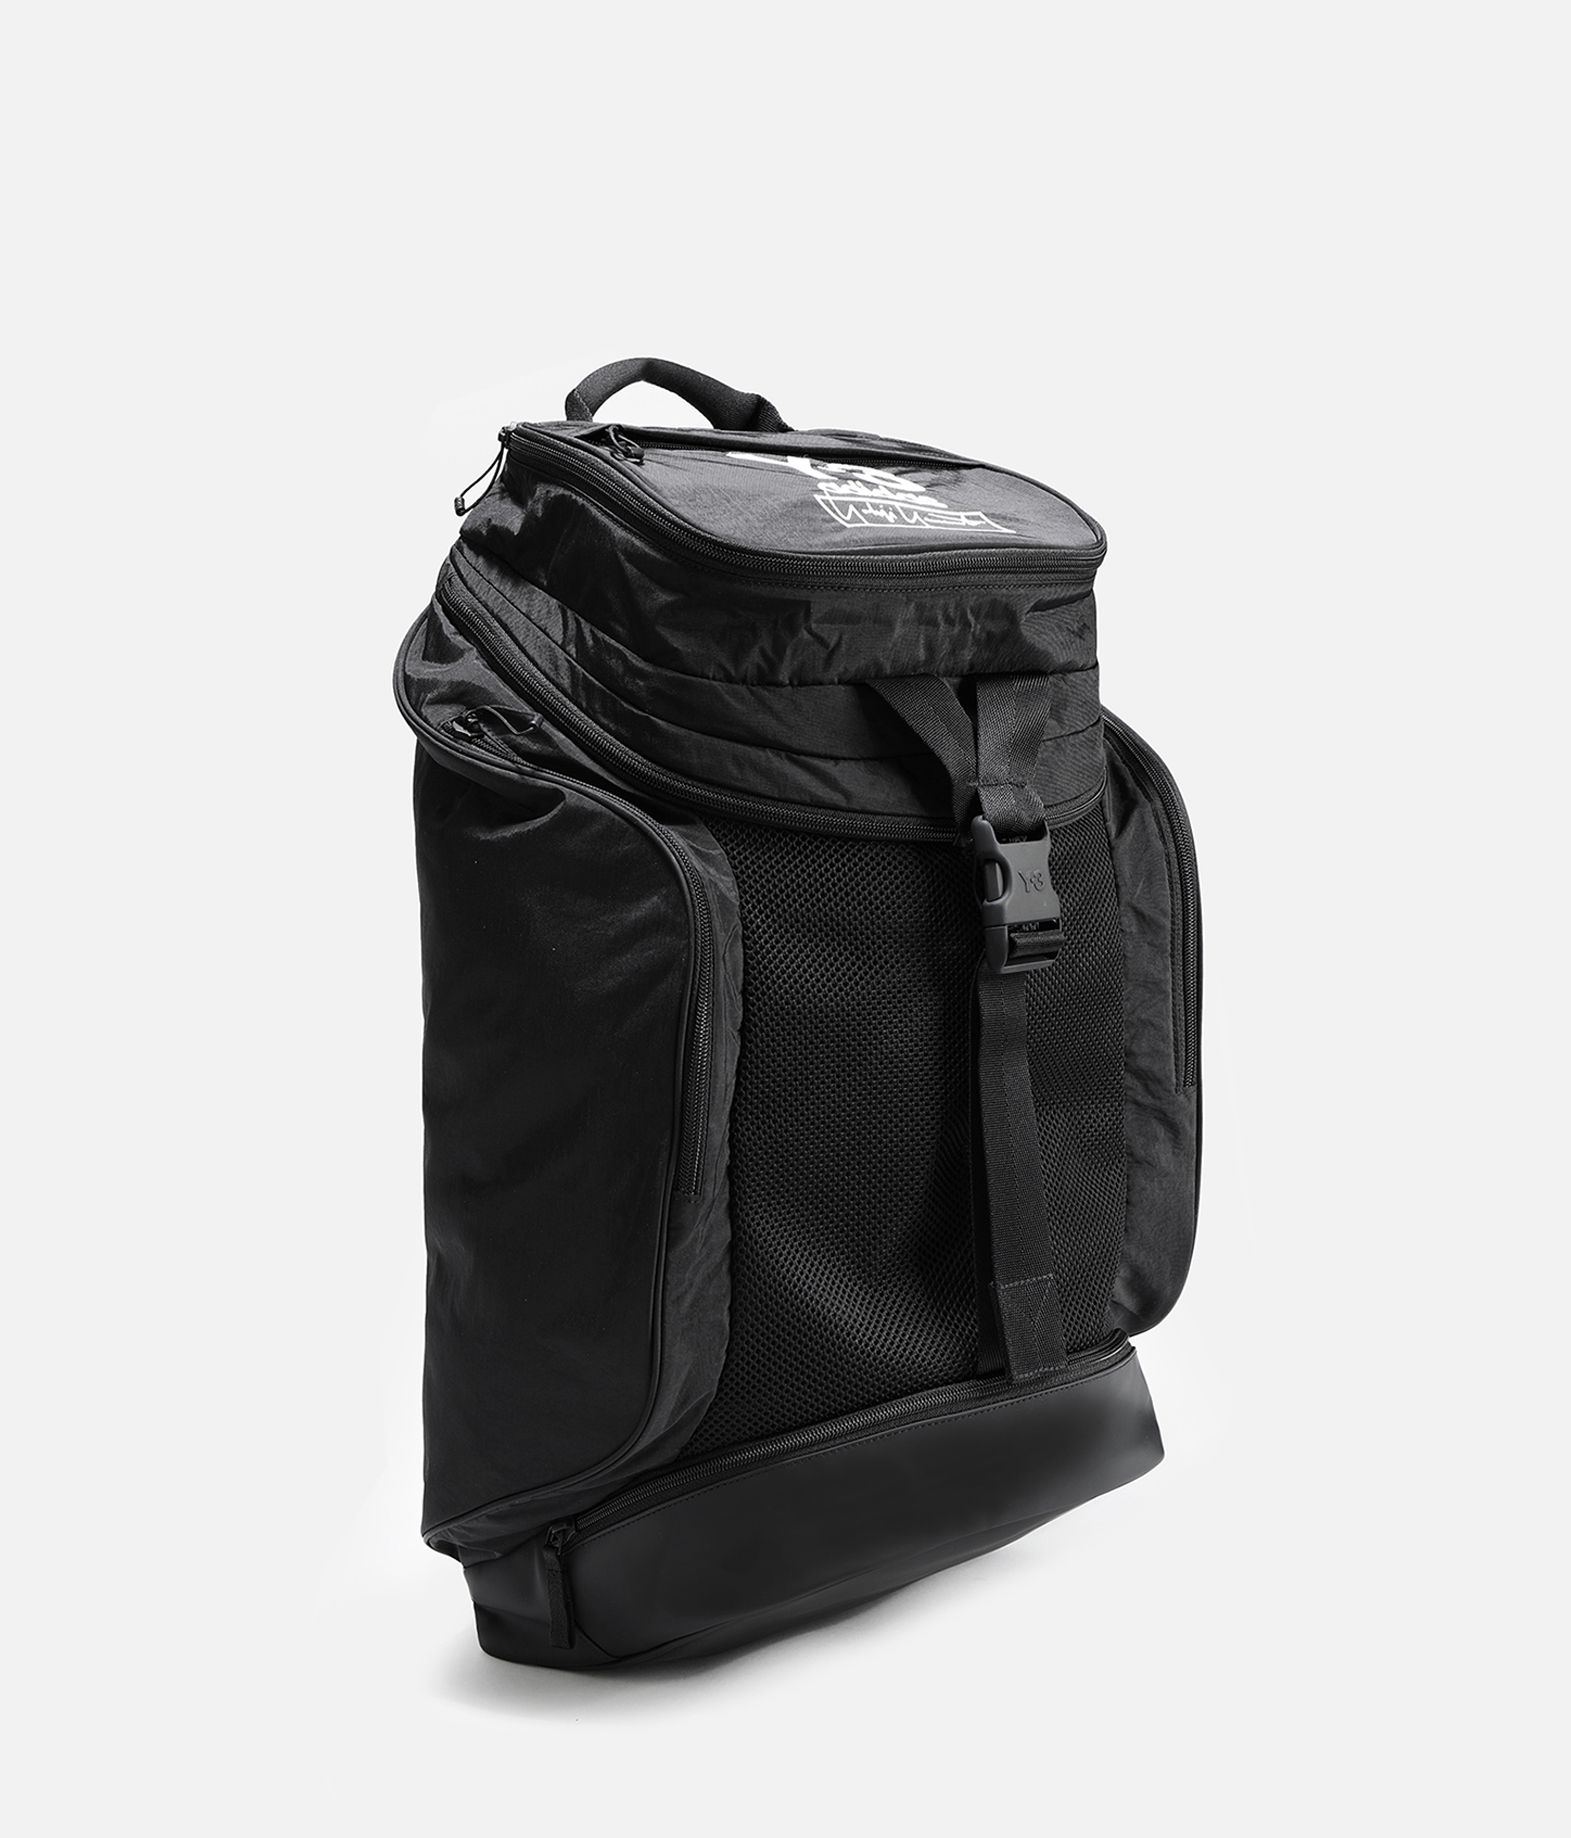 Y-3 Y-3 Travel Backpack Backpack E d